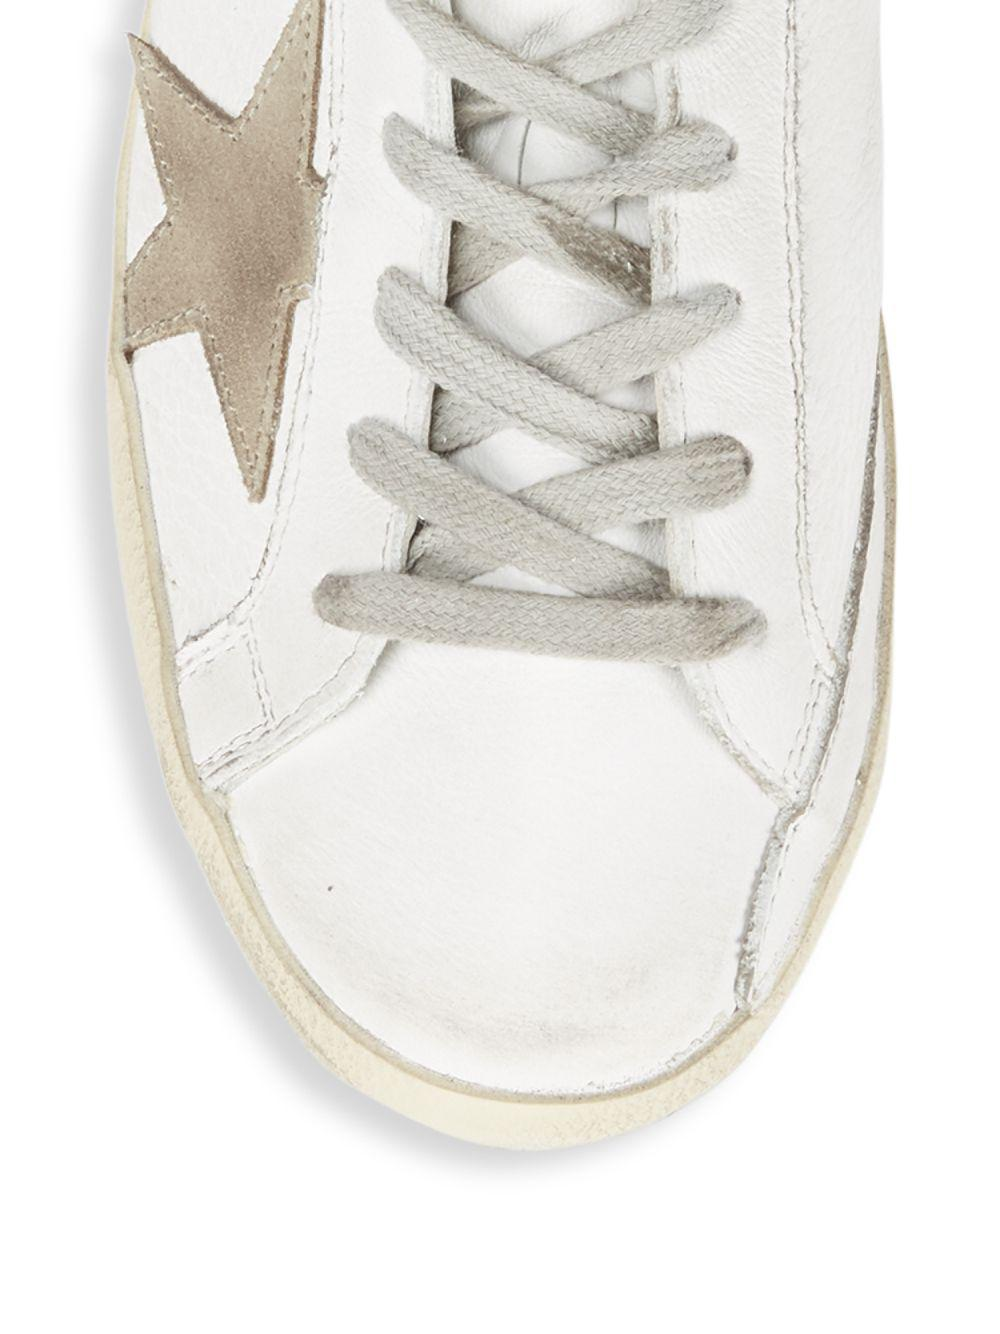 Golden Goose Deluxe Brand Lace-up Leather Sneakers in White